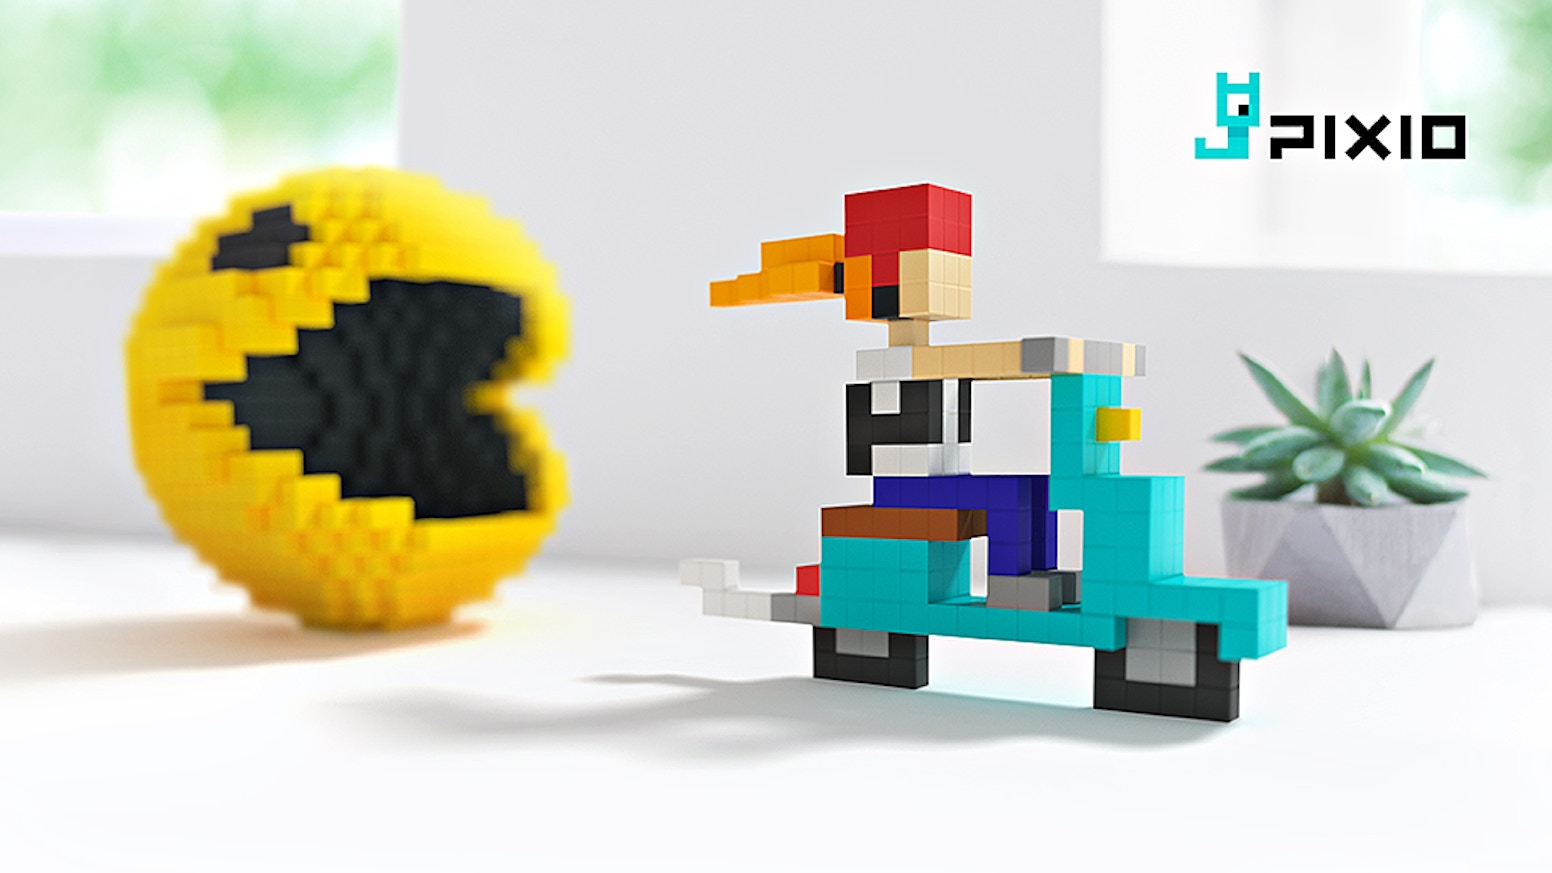 PIXIO — Magnetic Construction Set In The Pixel Art Style by PIXIO ...